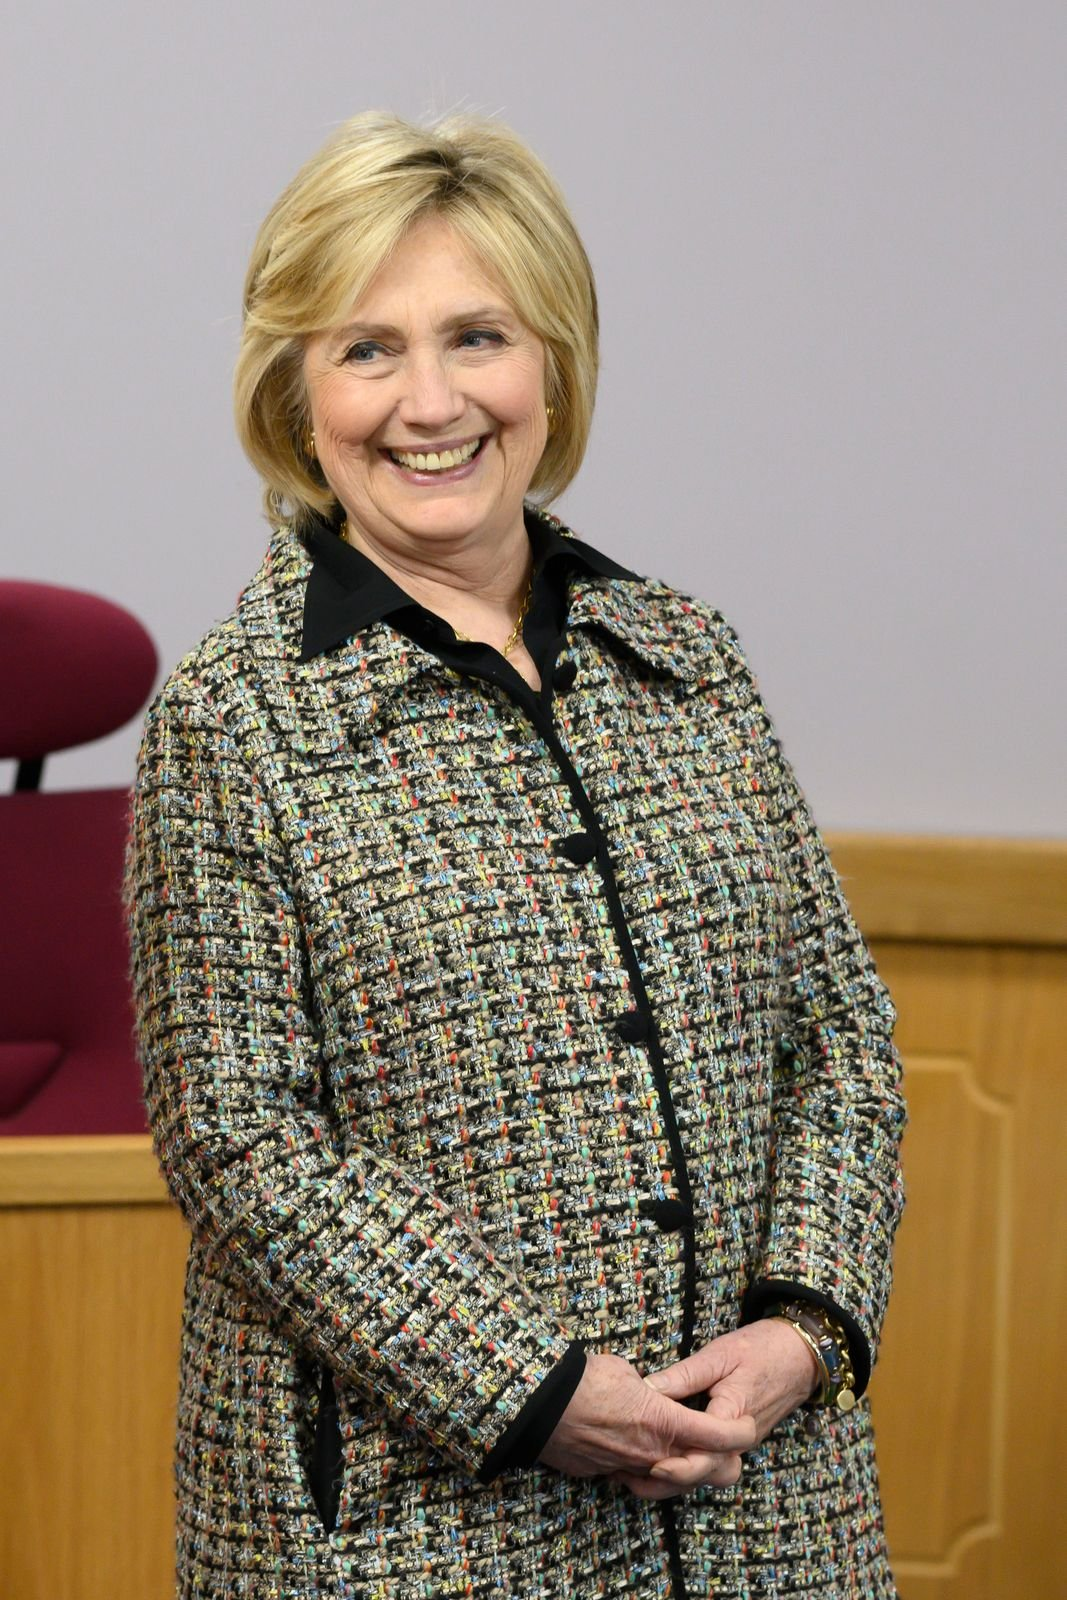 Hillary Clinton visits Swansea University on November 14, 2019, in Swansea, Wales | Photo: Matthew Horwood/Getty Images